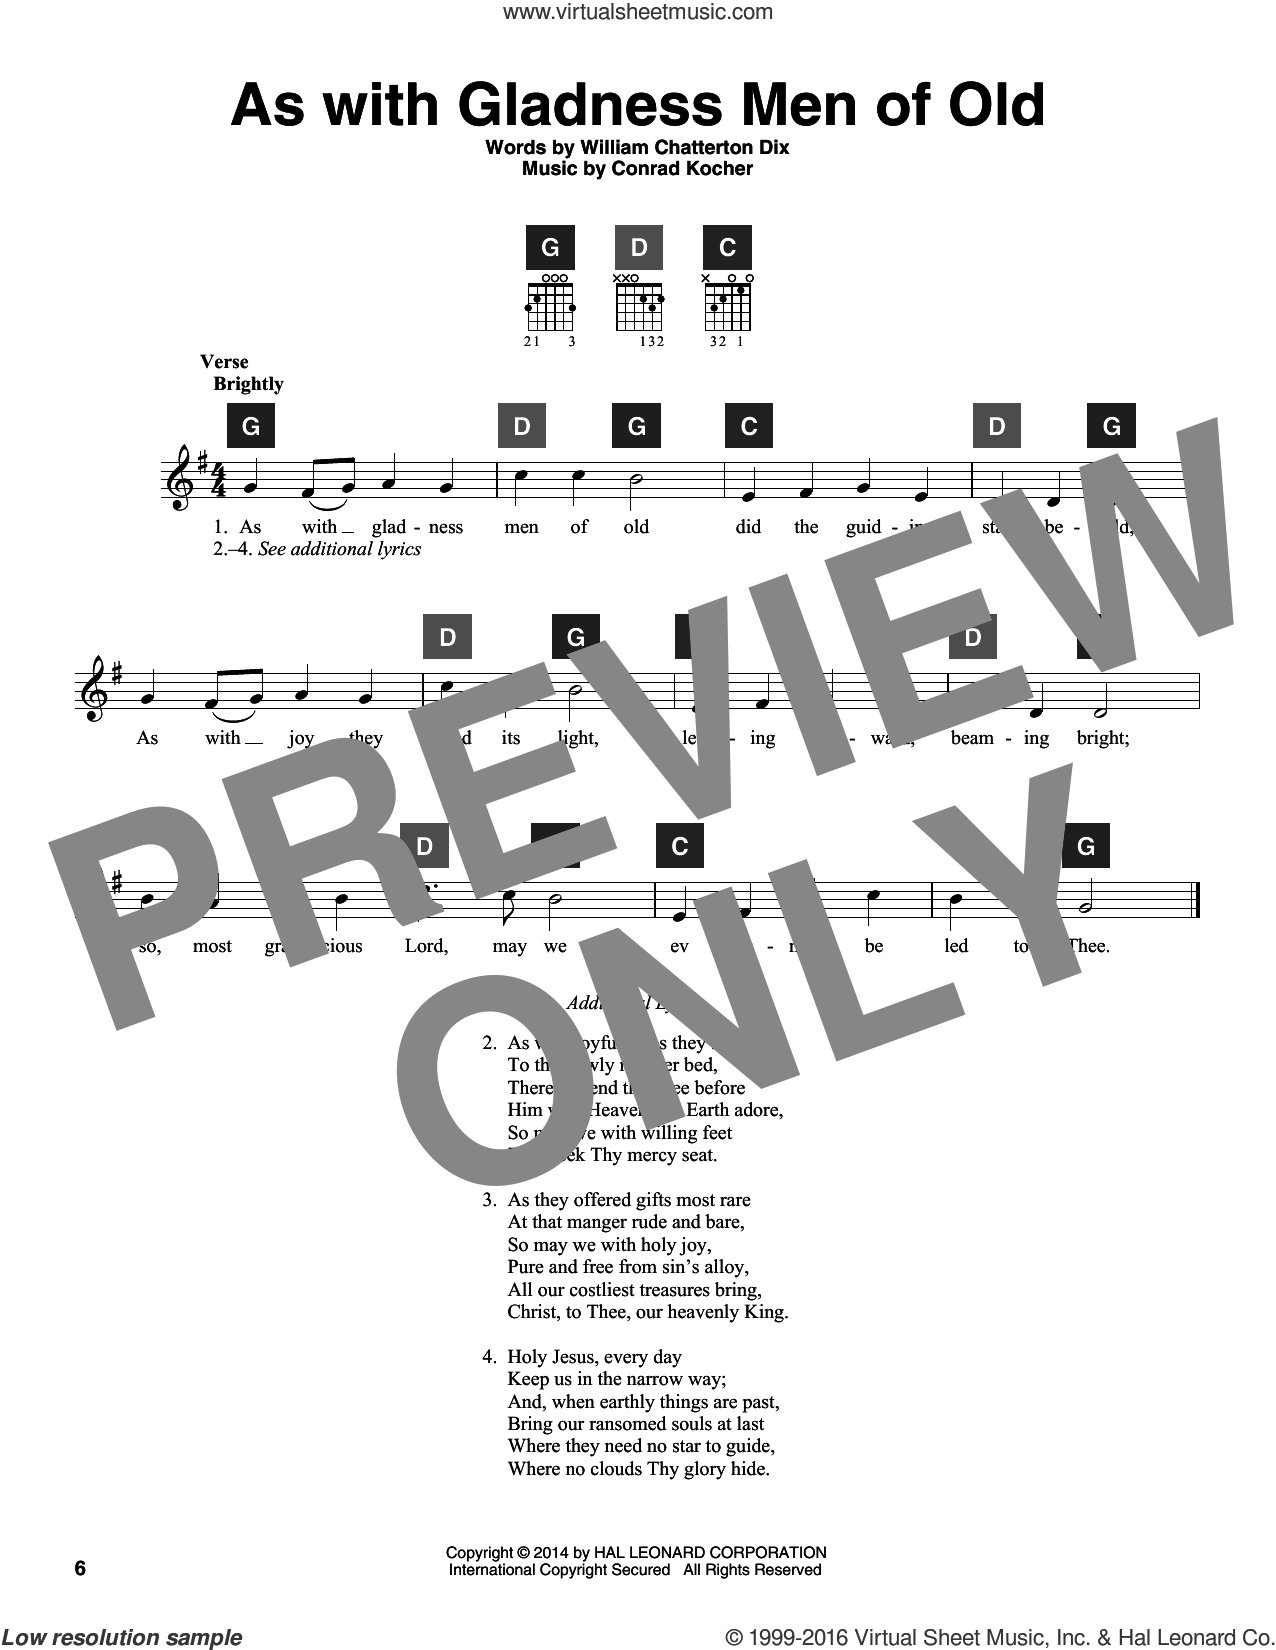 As With Gladness Men Of Old sheet music for guitar solo (ChordBuddy system) by William Chatterton Dix, Travis Perry and Conrad Kocher, intermediate guitar (ChordBuddy system). Score Image Preview.